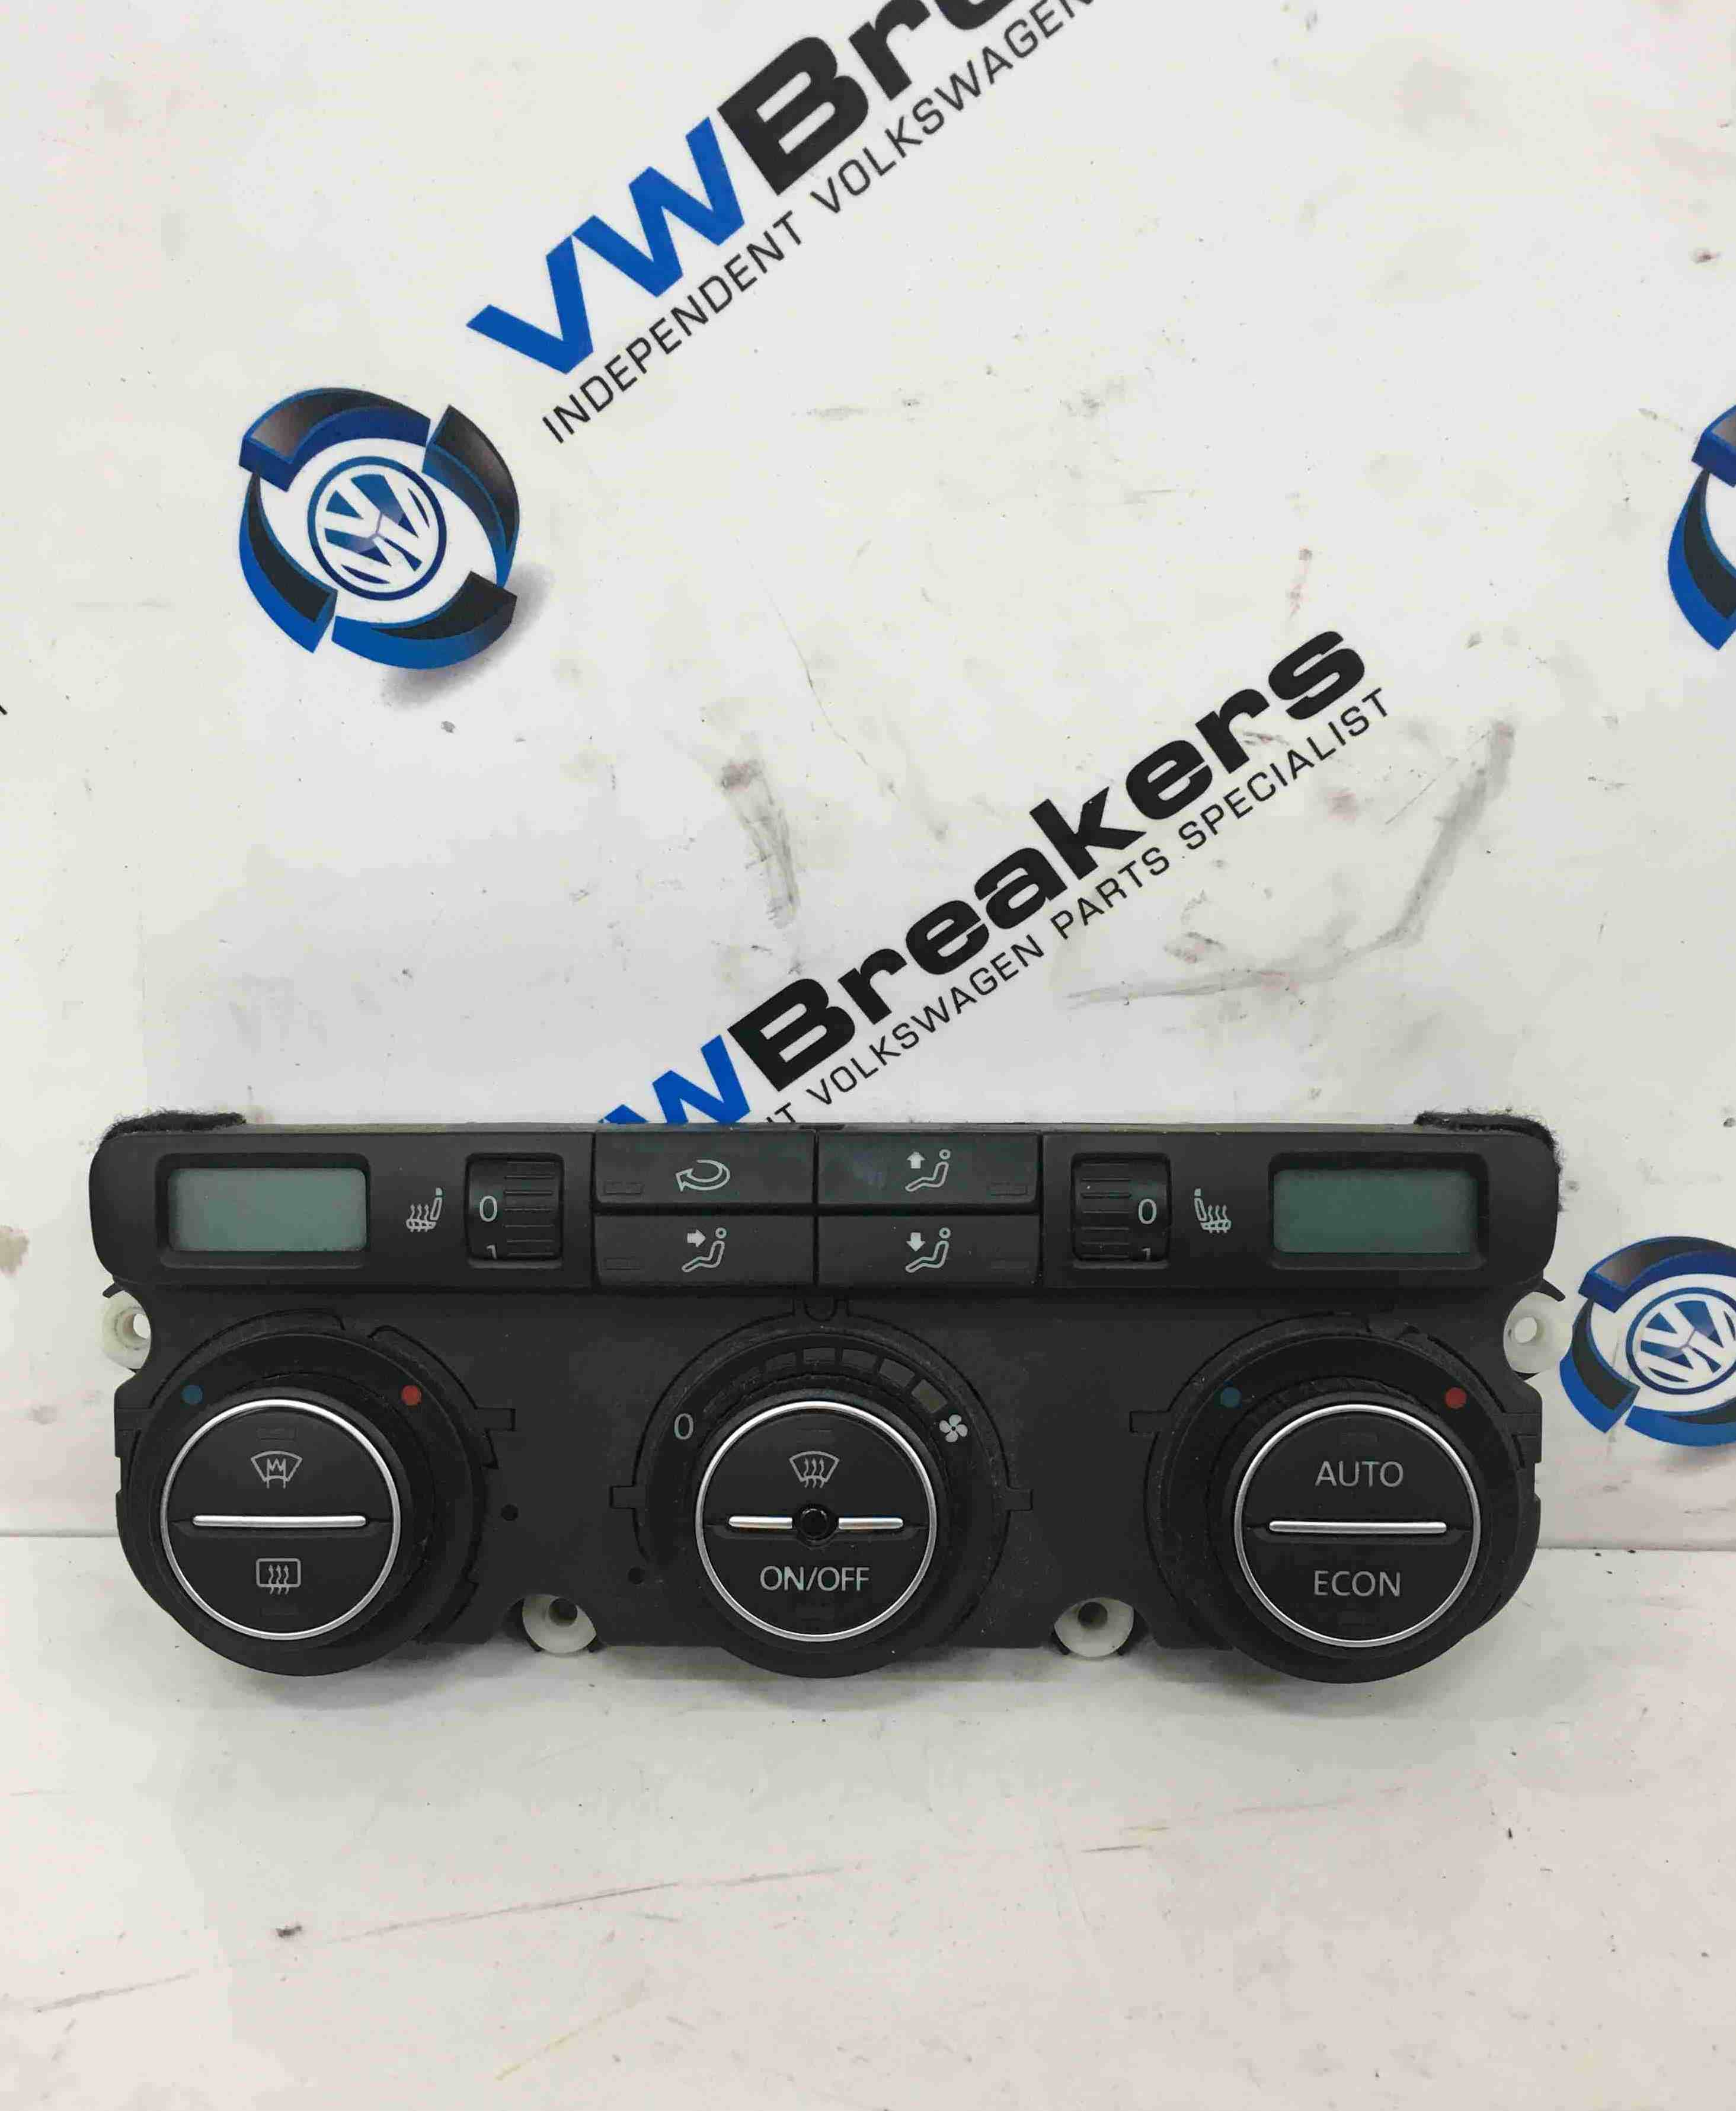 Volkswagen Passat B6 2005-2010 Heater Controls Climate Control With Heated Seats